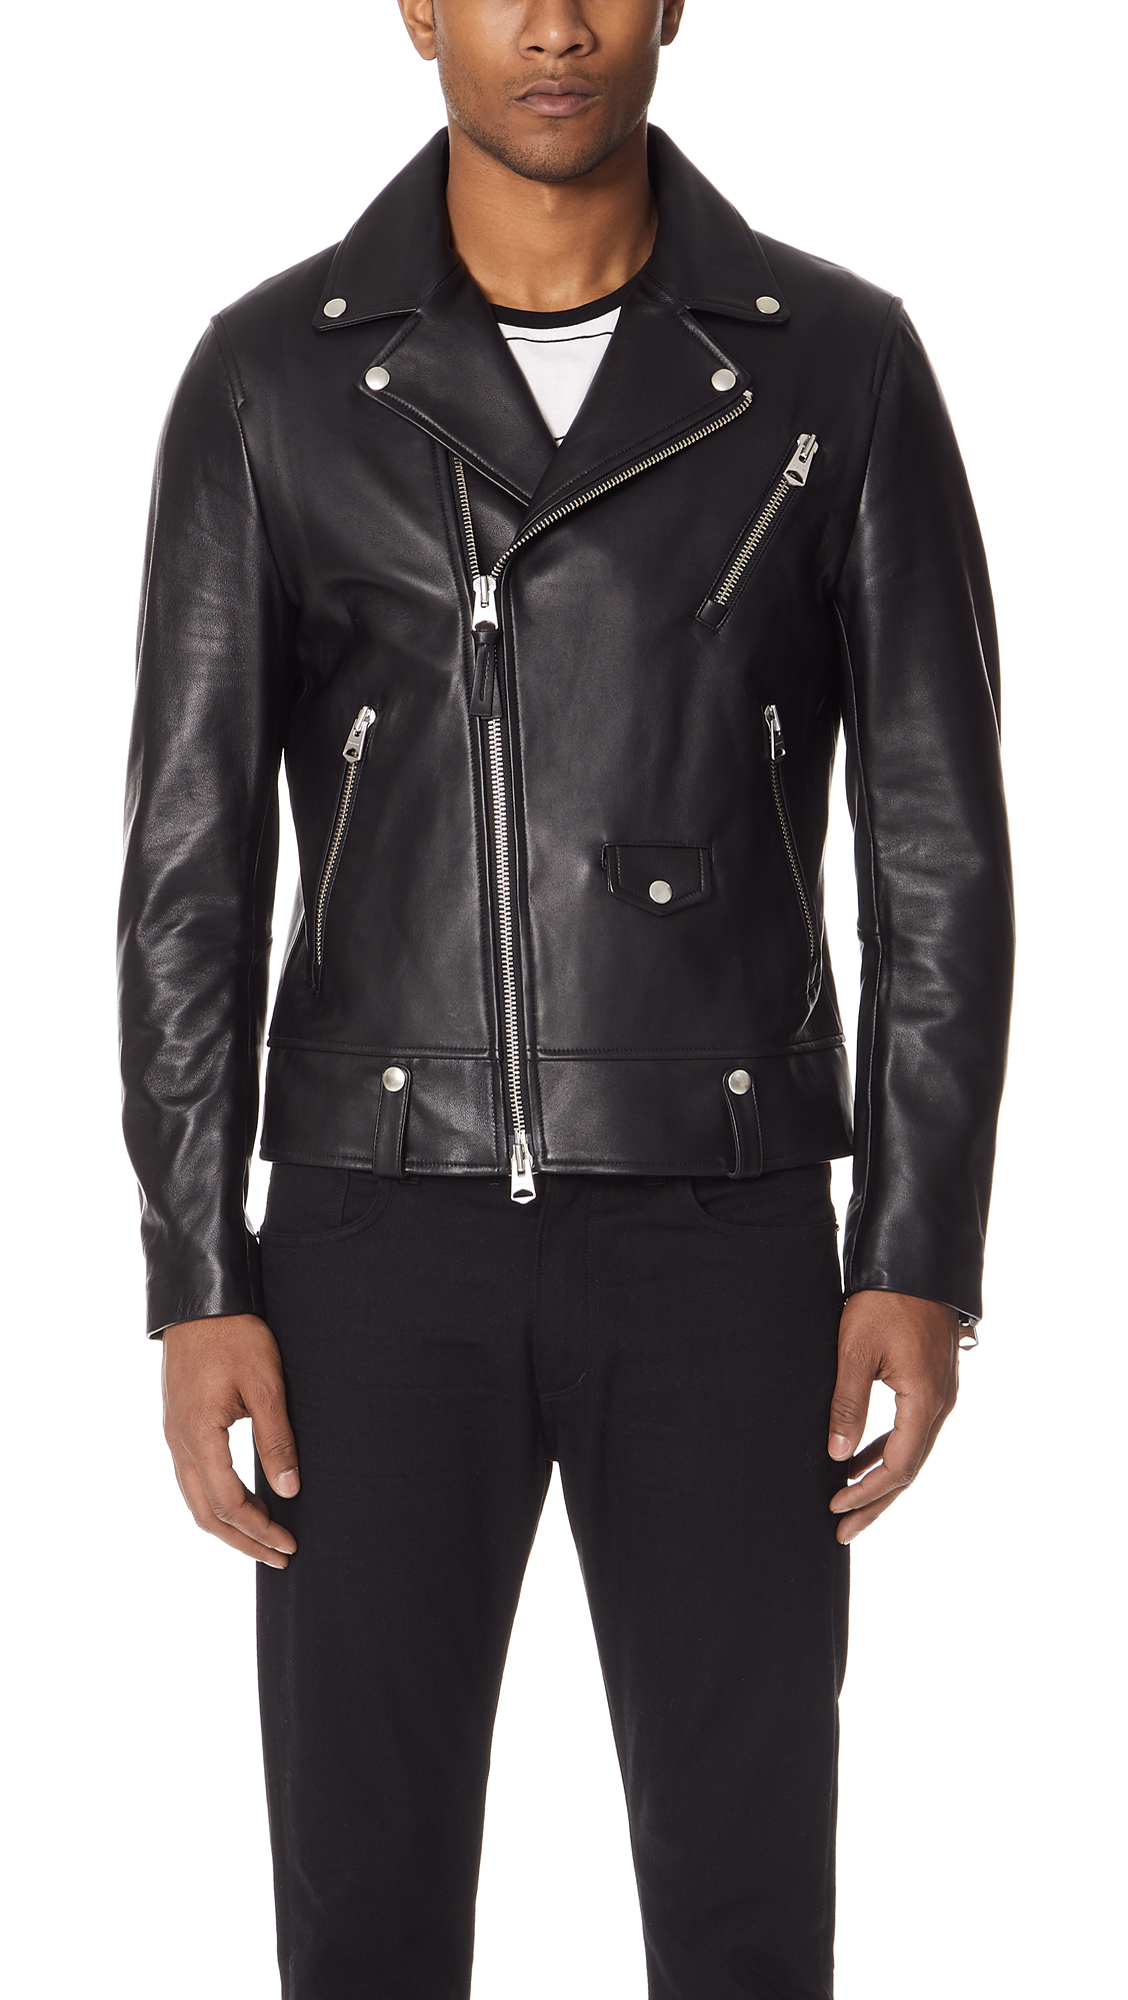 FENTON LEATHER JACKET